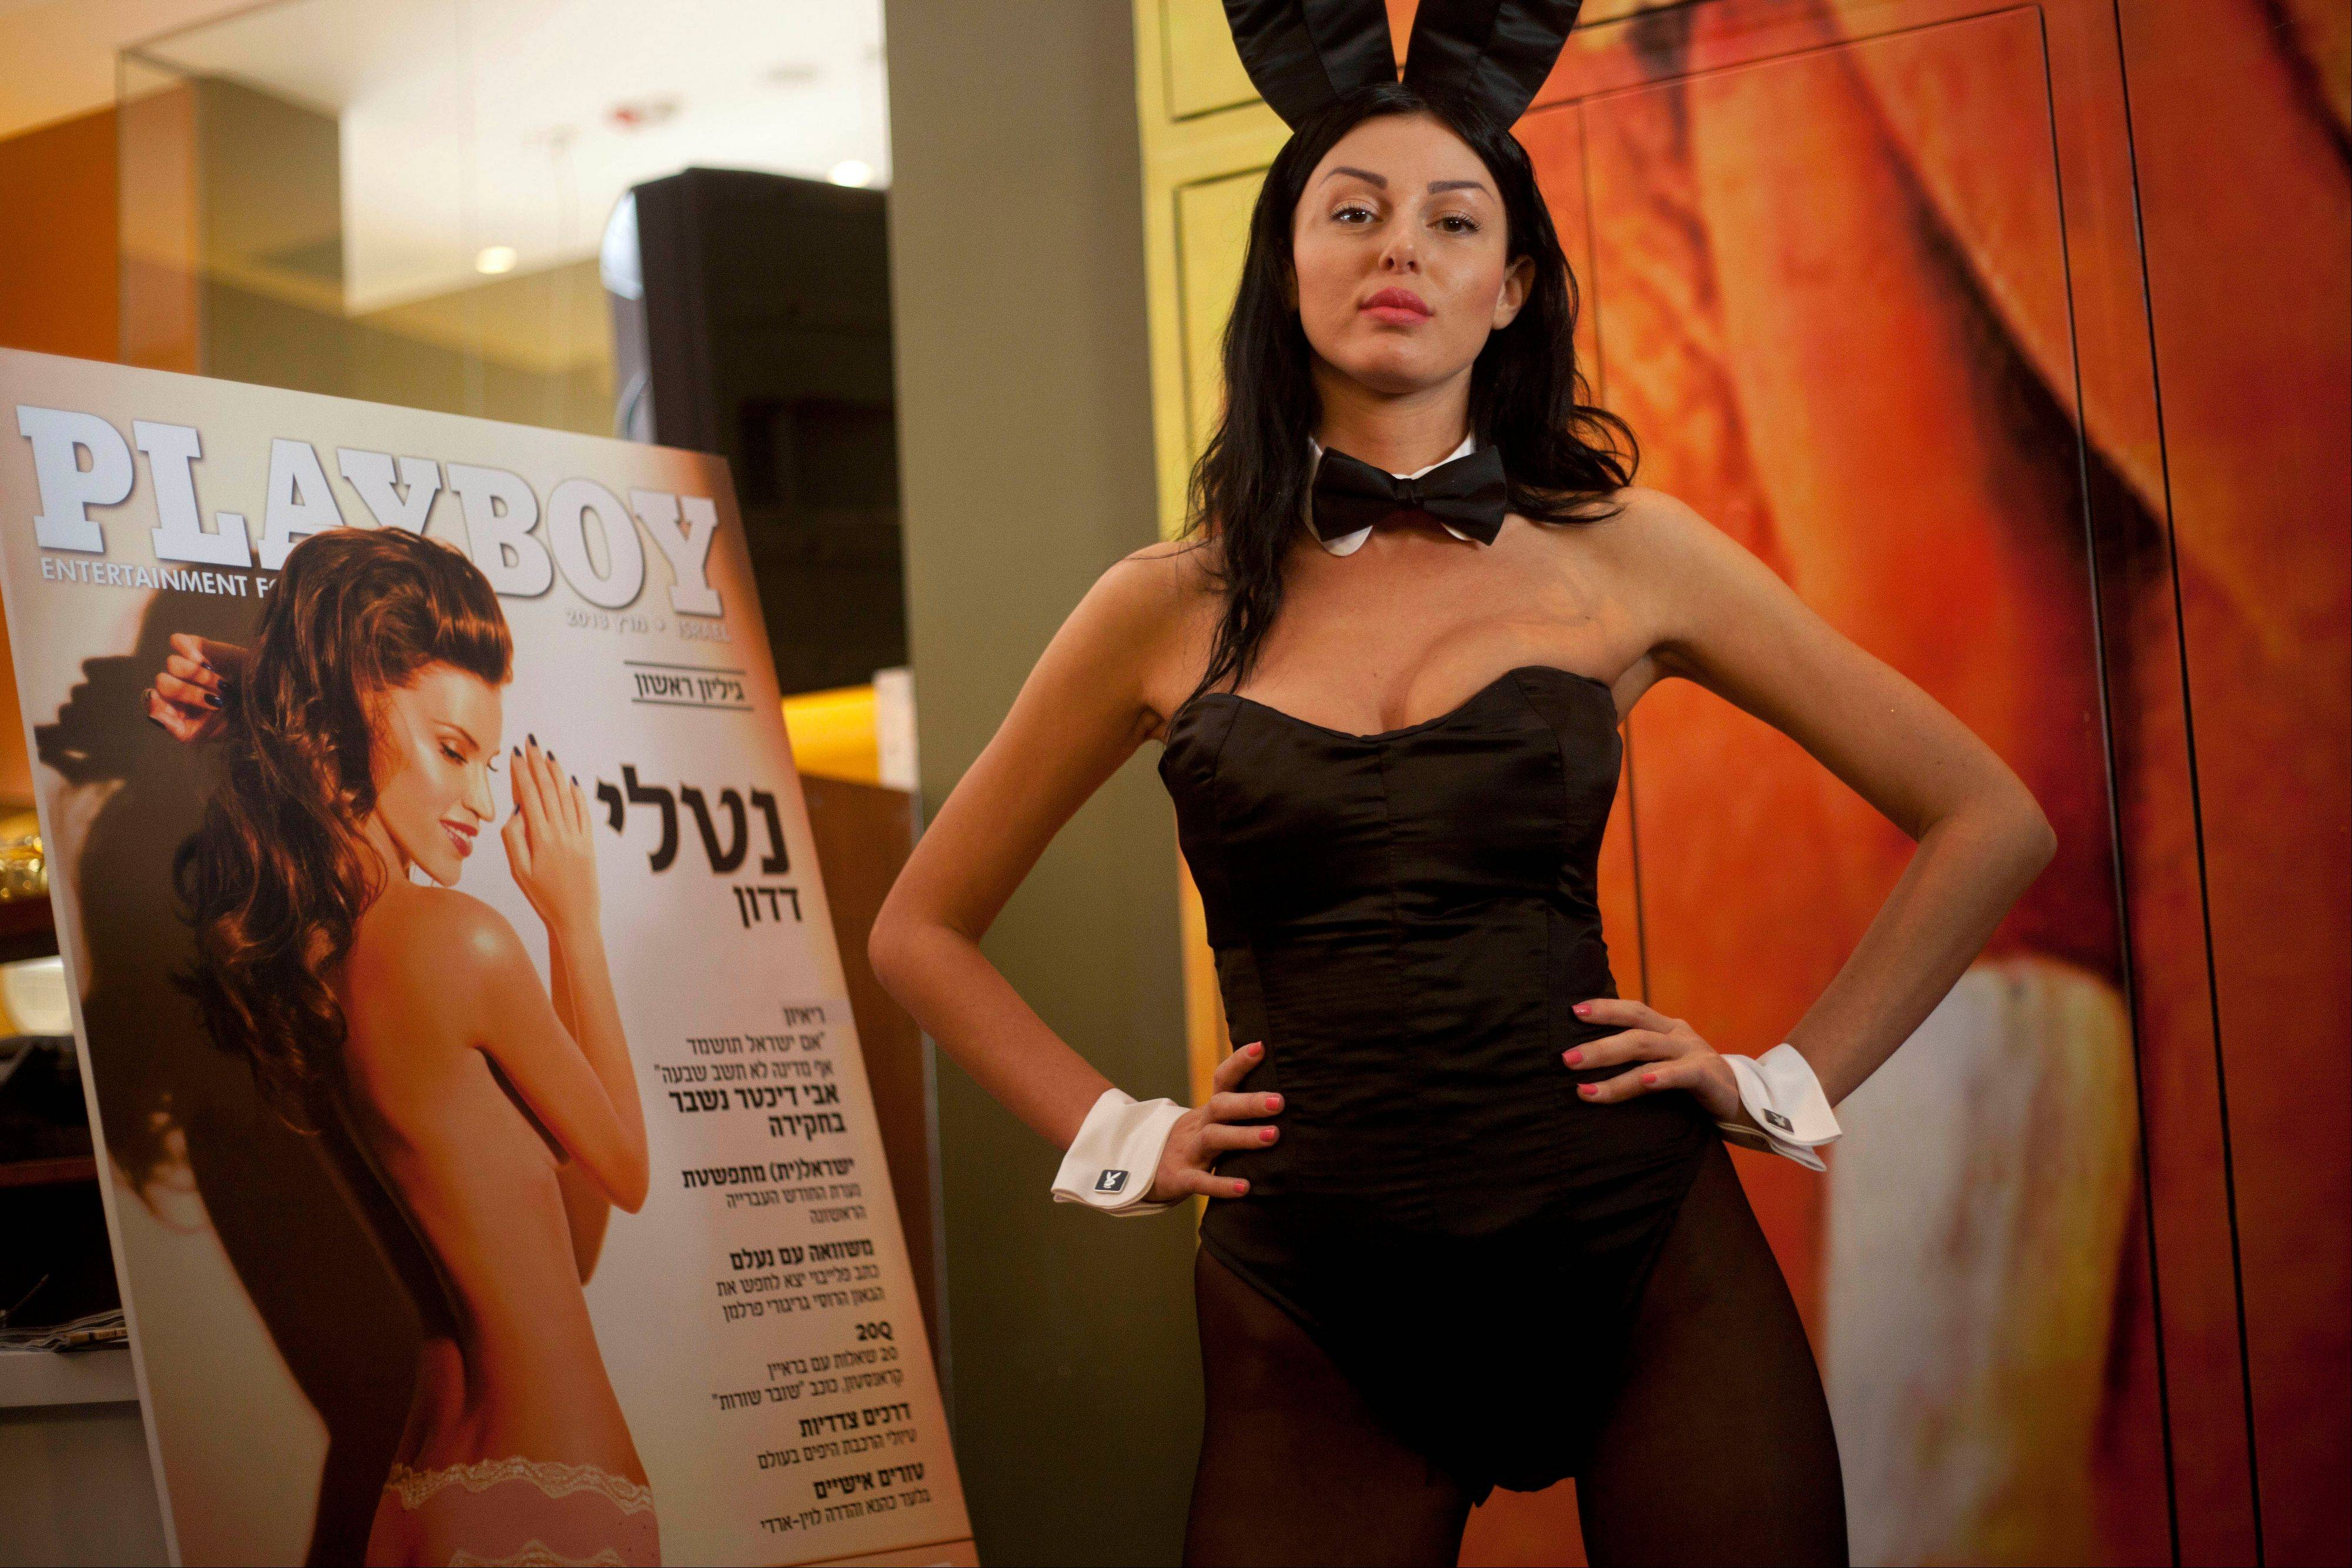 "Israelis can now read Playboy ""for the articles."" A U.S. �migr�, Daniel Pomerantz, on Tuesday launched the first Hebrew language edition of the popular men's magazine. Playboy has been widely available in Israel for years, but this marks the first local edition of the magazine featuring Israeli models and articles by Israeli writers."